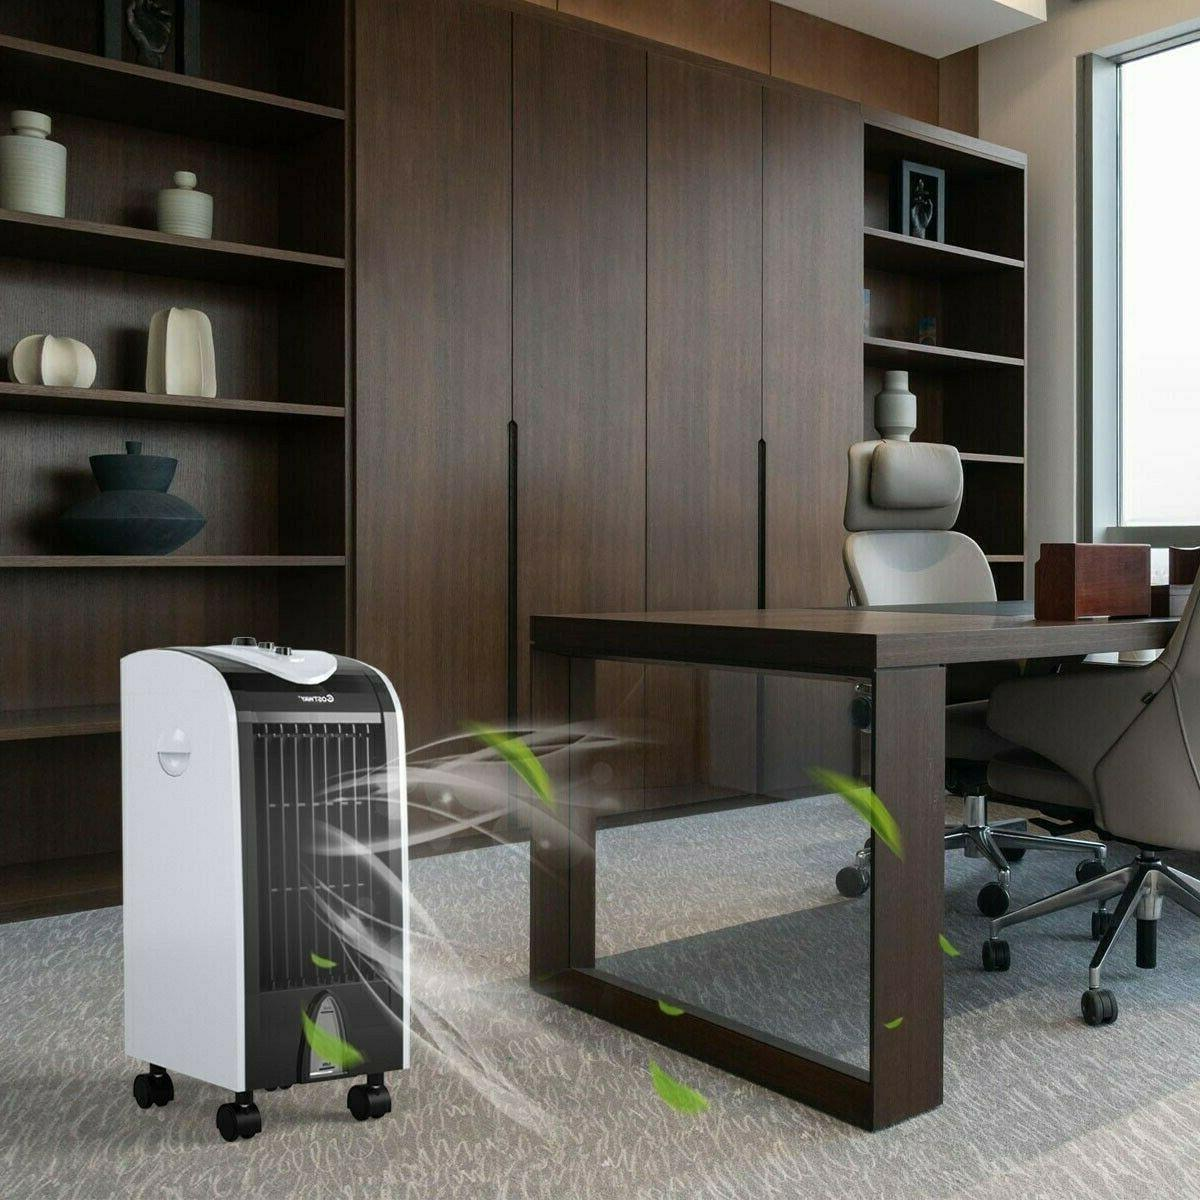 Evaporative Portable Cooler with Filter Honeycomb